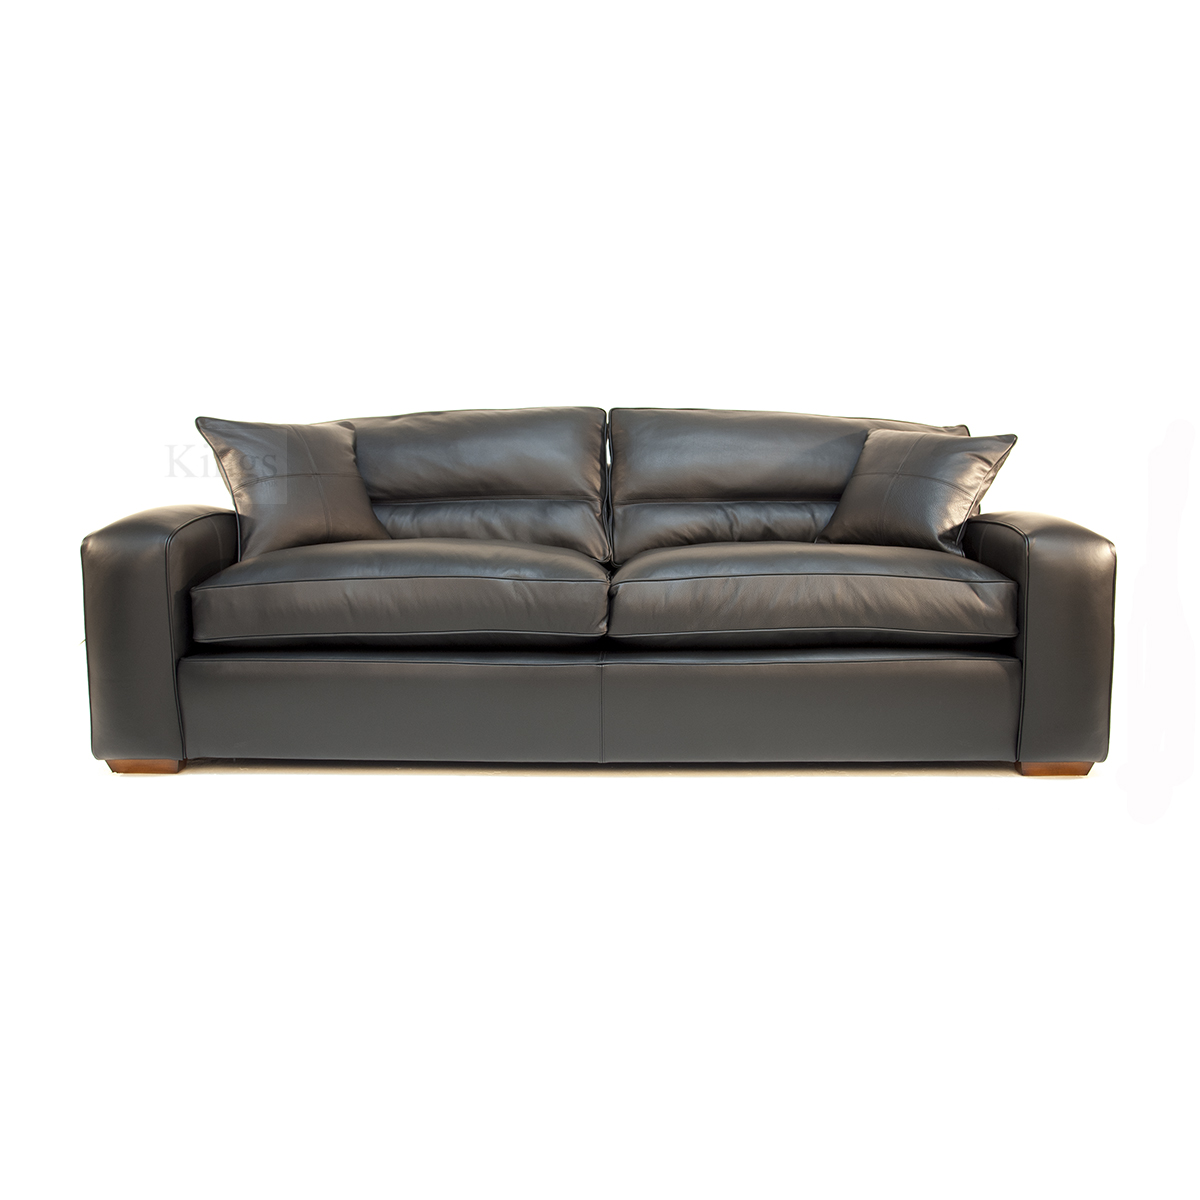 Duresta upholstery grand panther sofa in nero black leather Sofa aufpolstern